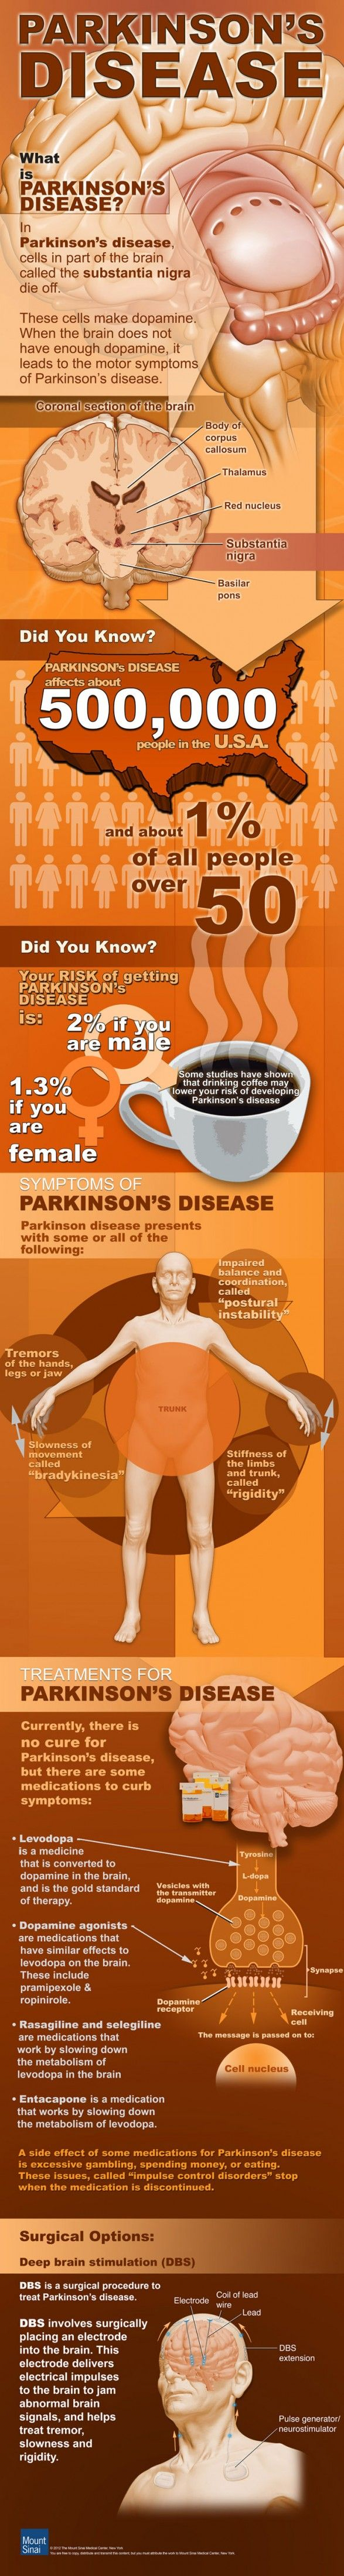 8 Facts You Should Know About Parkinson's Disease and Psychosis